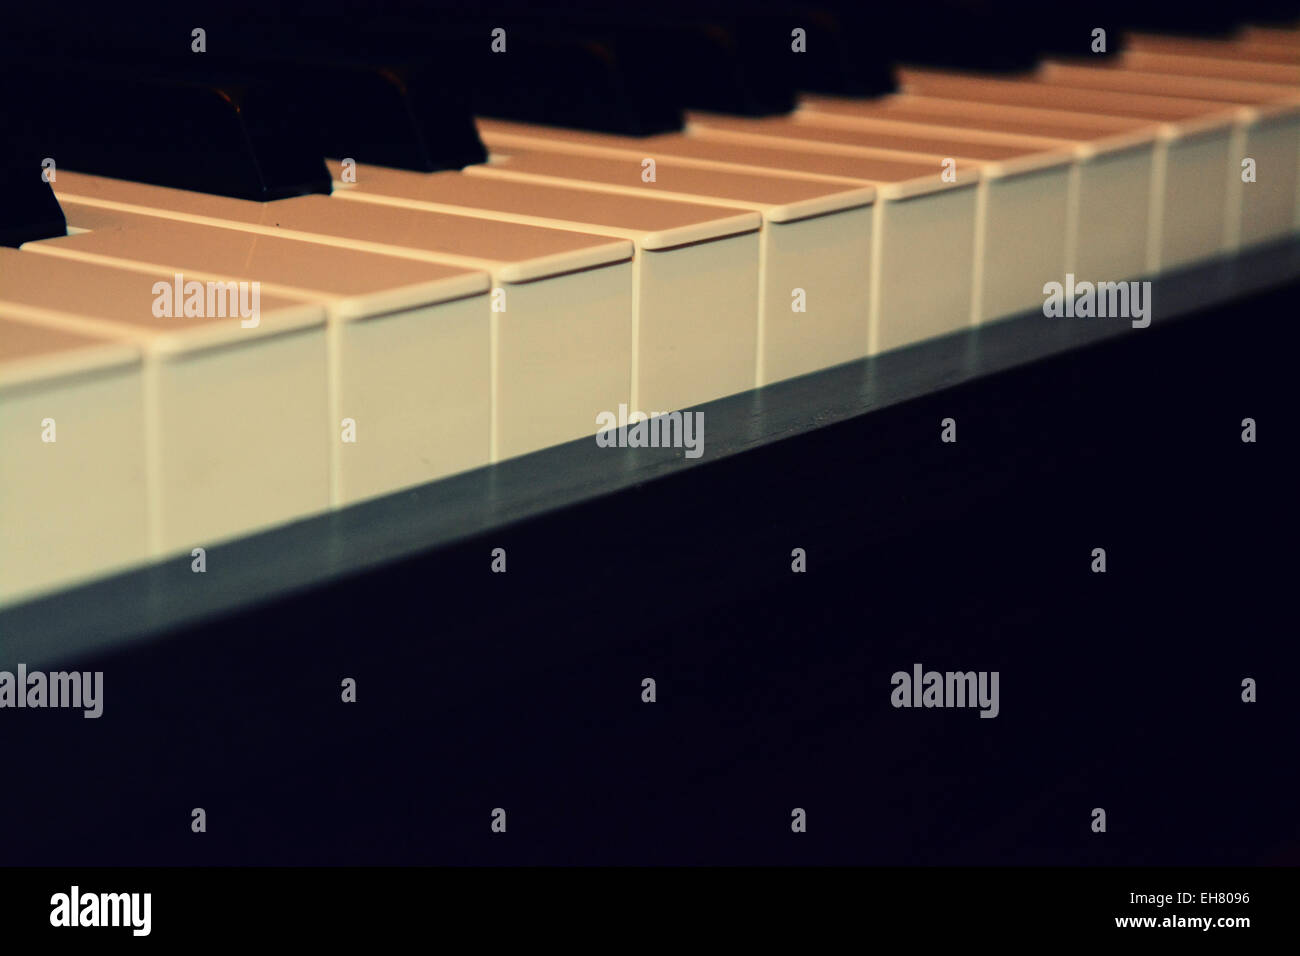 Piano keys - Stock Image